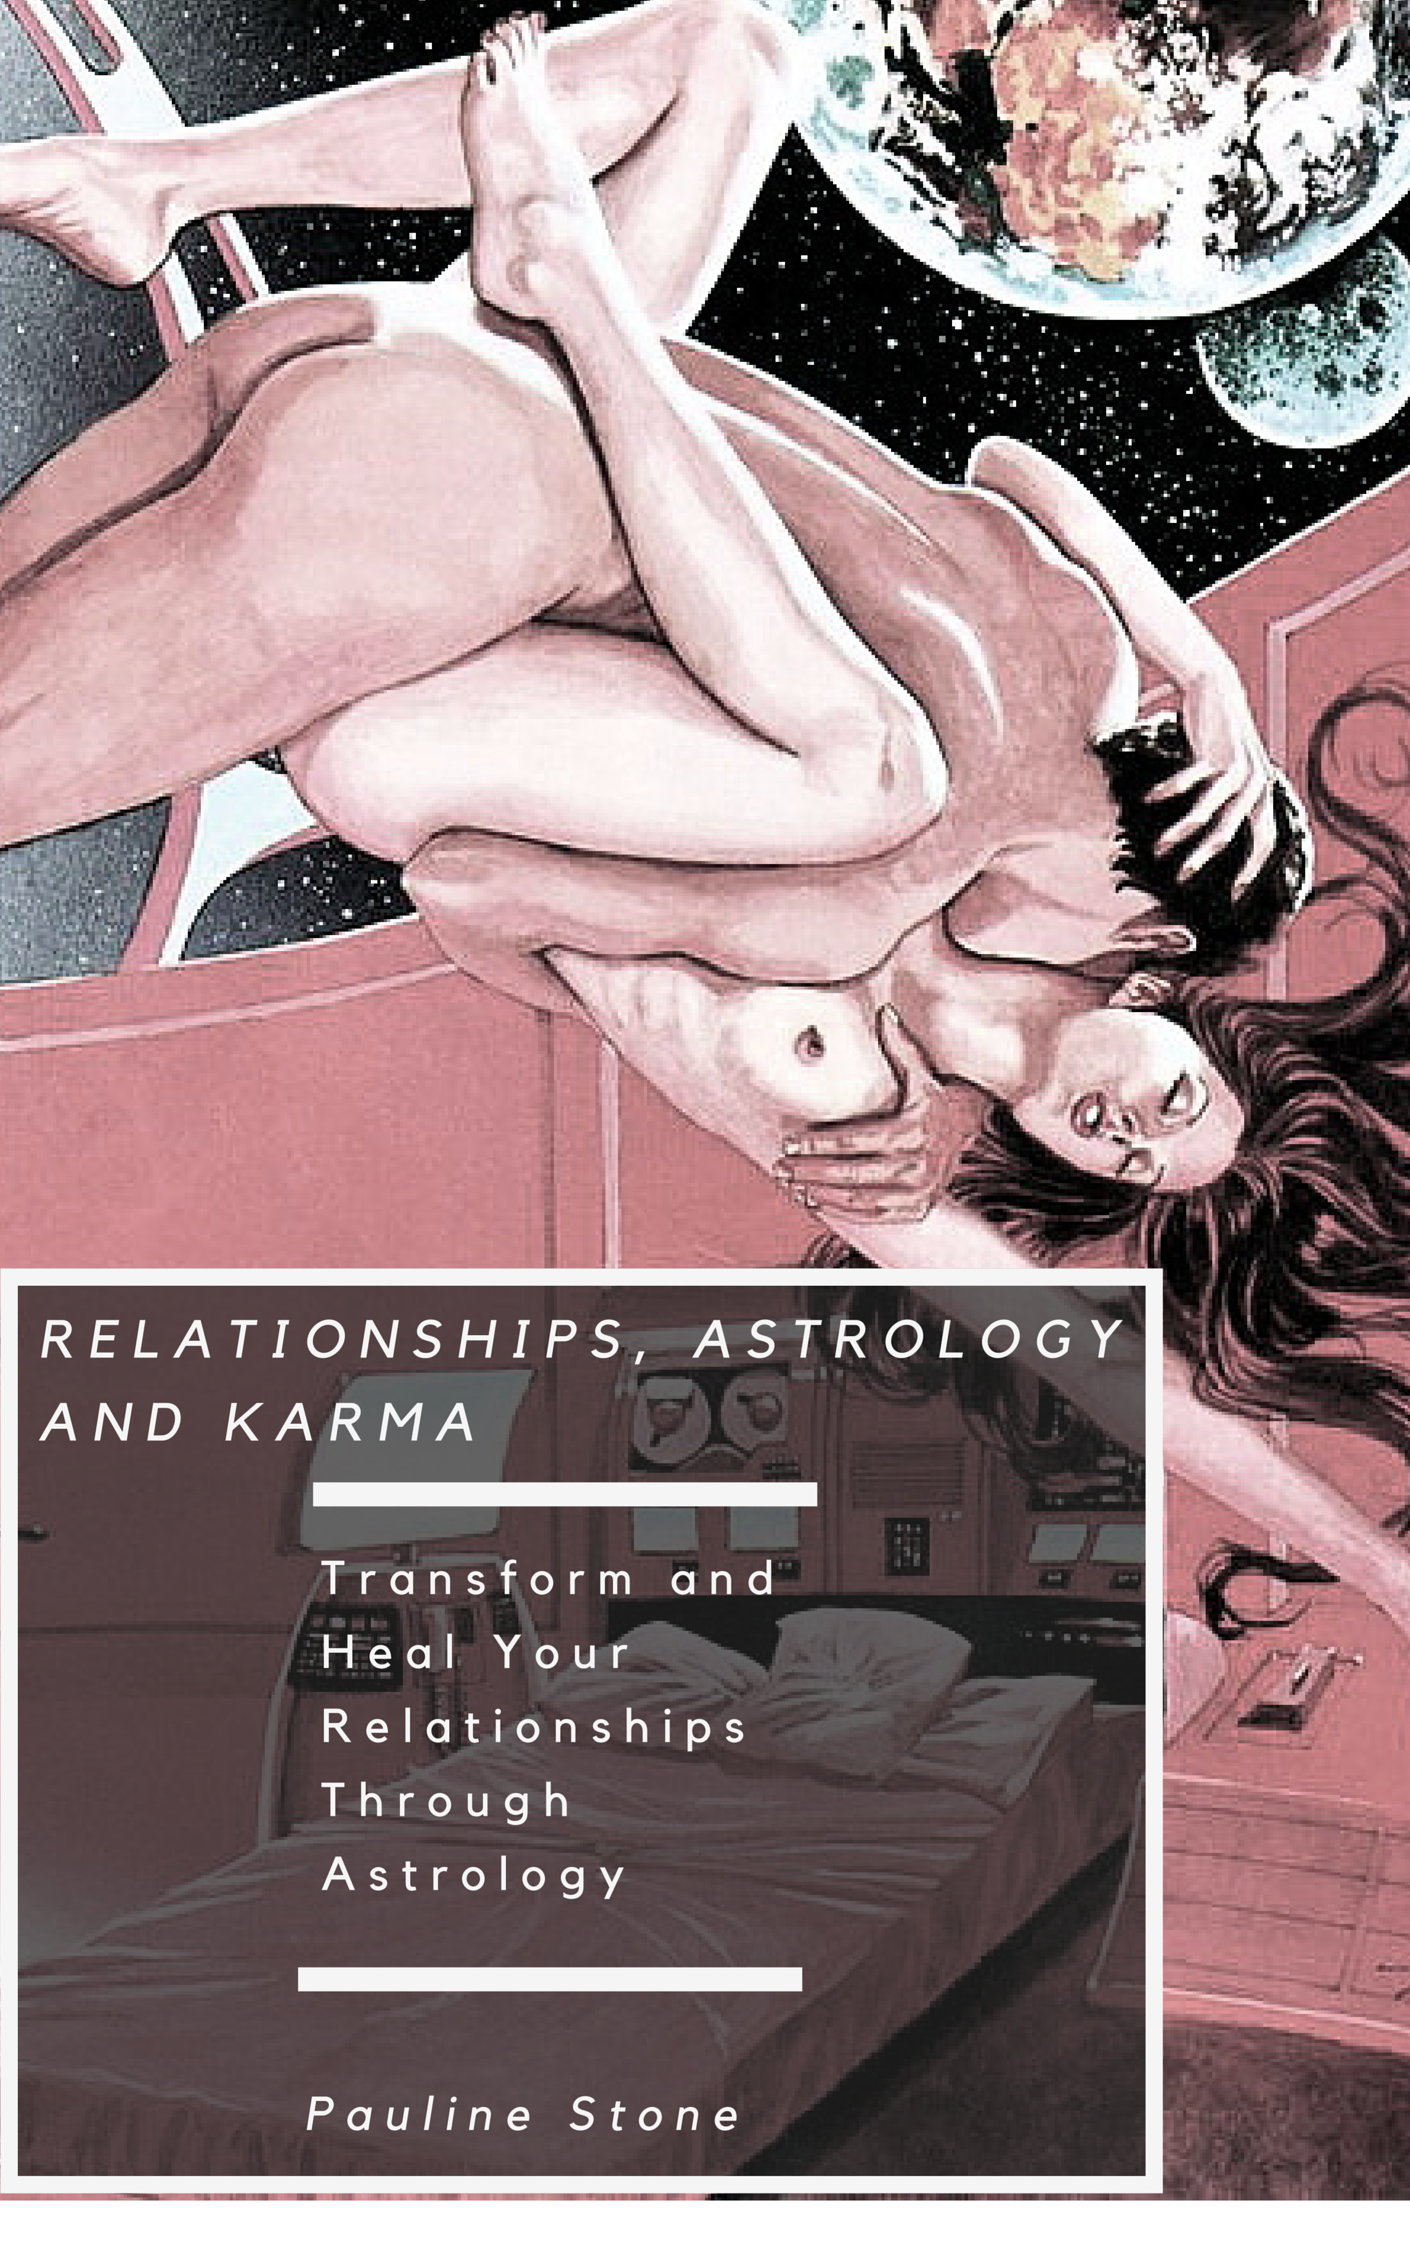 The Galactic Dimension of Astrology